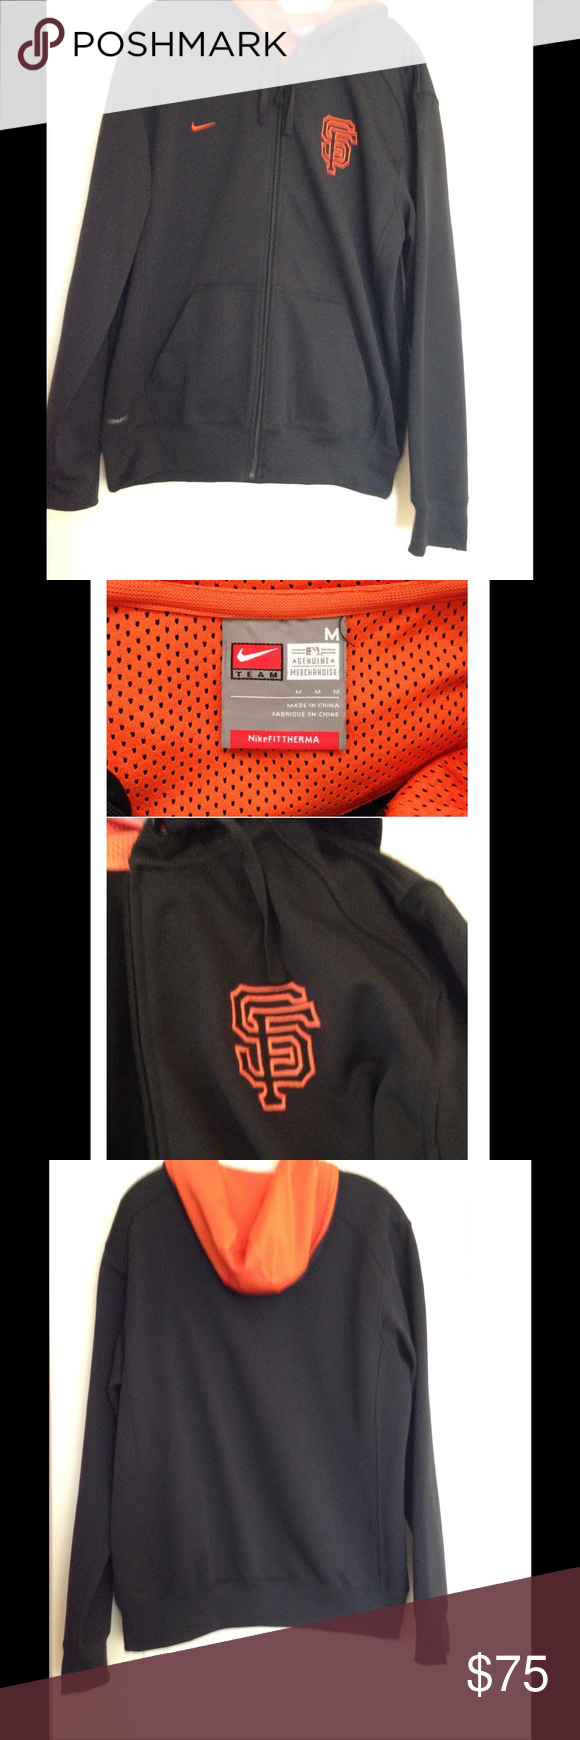 Nike** NWOT ⚾️ San Francisco Giants thermal Jacket Authentic MLB San Francisco Giants FITTherma zip front jacket. Hood with drawstring, side pockets. Sleeves and bottom rib hem. SF Giants, Nike and NikeFit logos. Colors Black with Orange embroidery. Size M. 100% Polyester. Purchased at the Giants Dugout @ AT&T Park. Sorry no Trades Nike Jackets & Coats